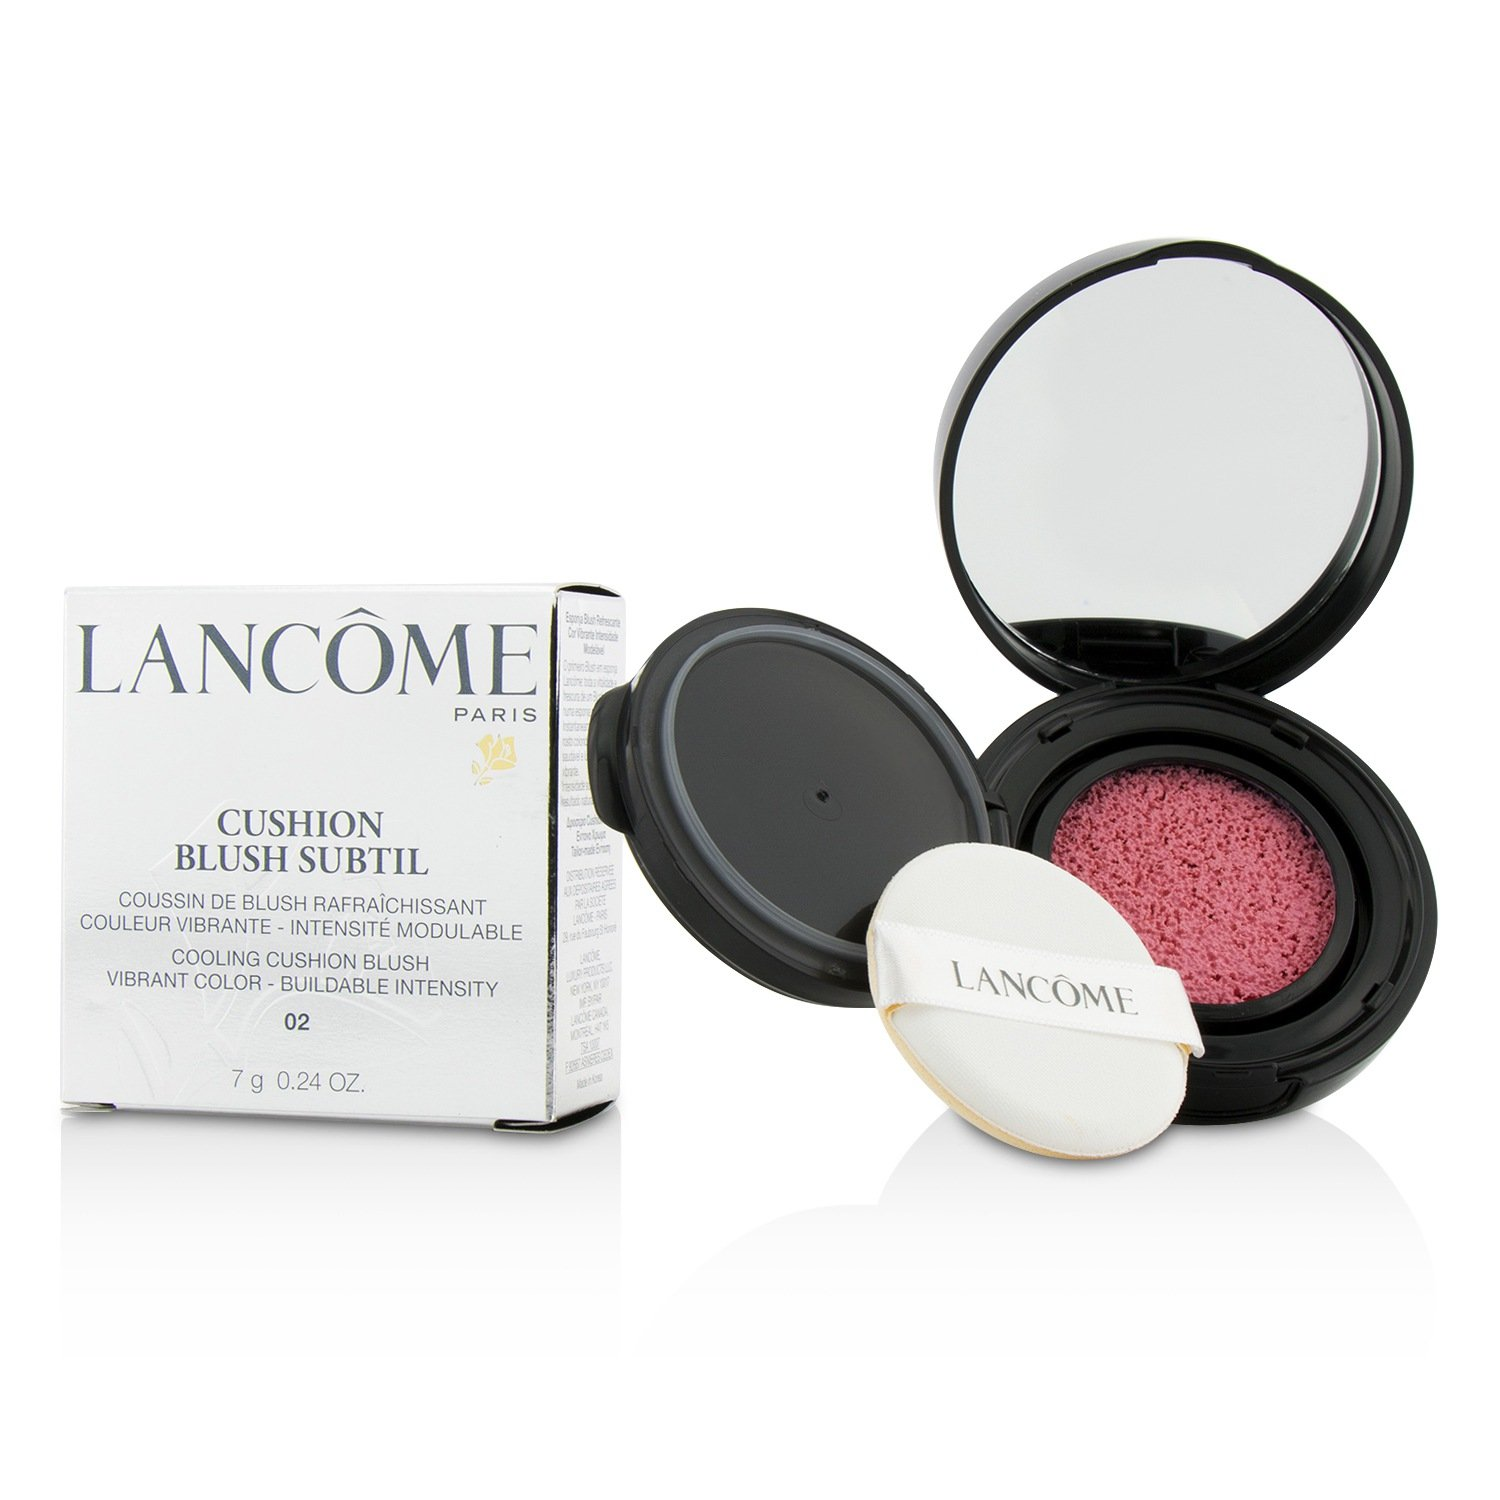 Lco Blush Subtil Cushion 02 Lancome 4935421623360